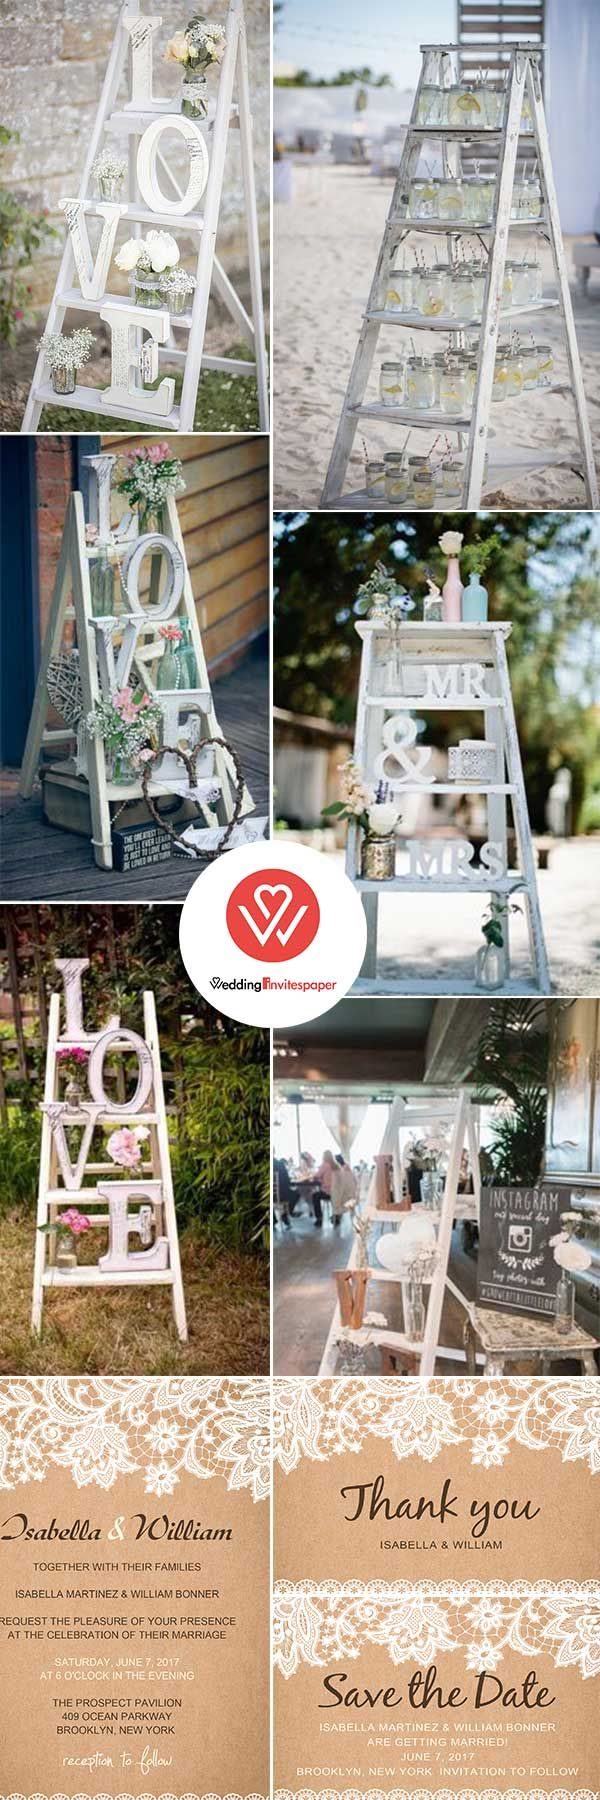 Yard wedding decoration ideas   CREATIVE SHABBY CHIC LADDER WEDDING DECORATION IDEAS  Wedding